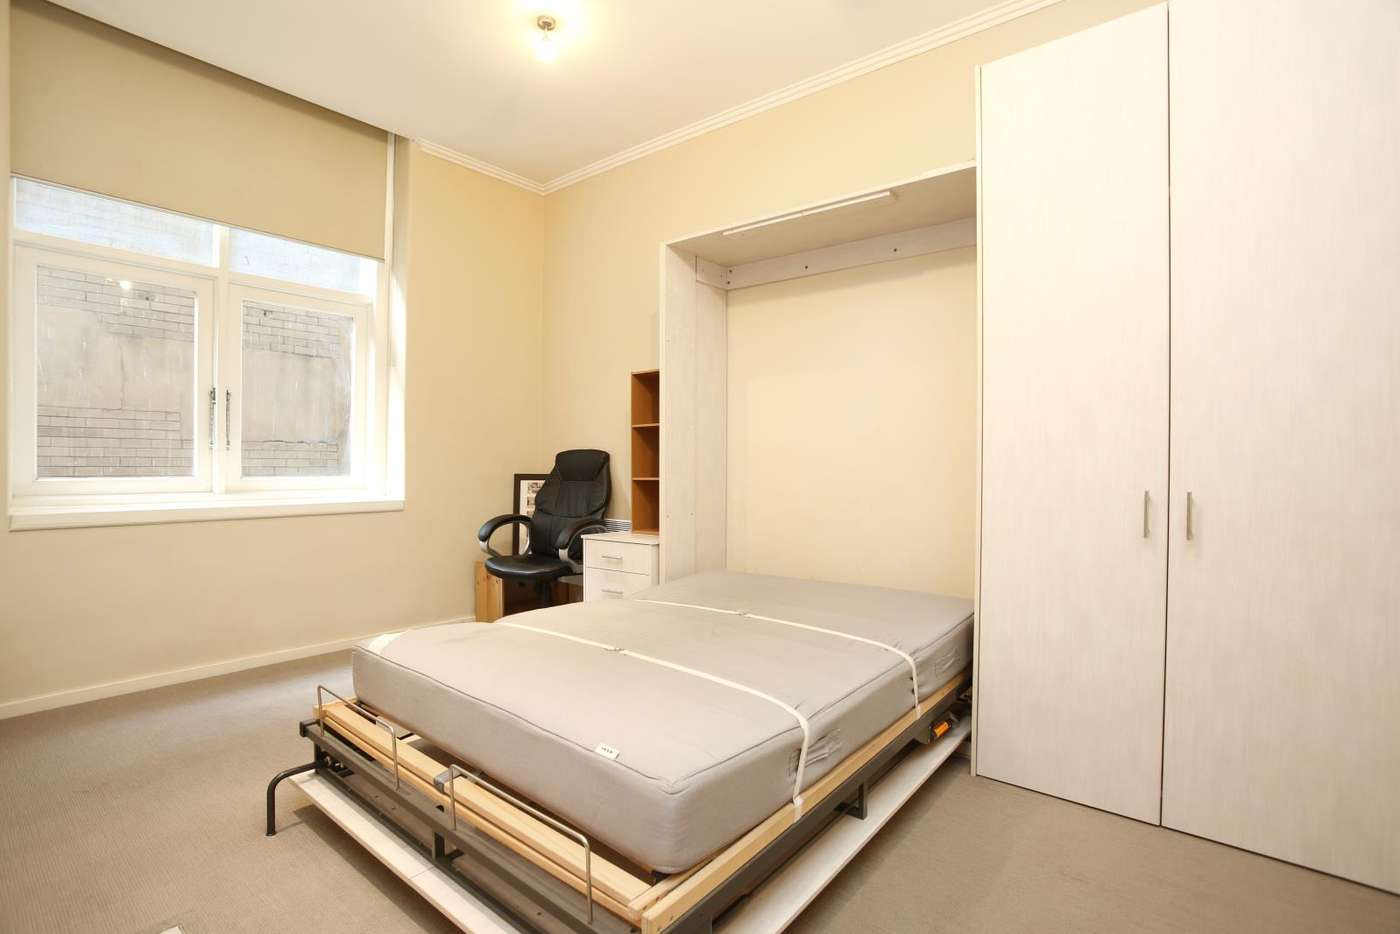 Main view of Homely studio listing, 65 Elizabeth St, Melbourne VIC 3000